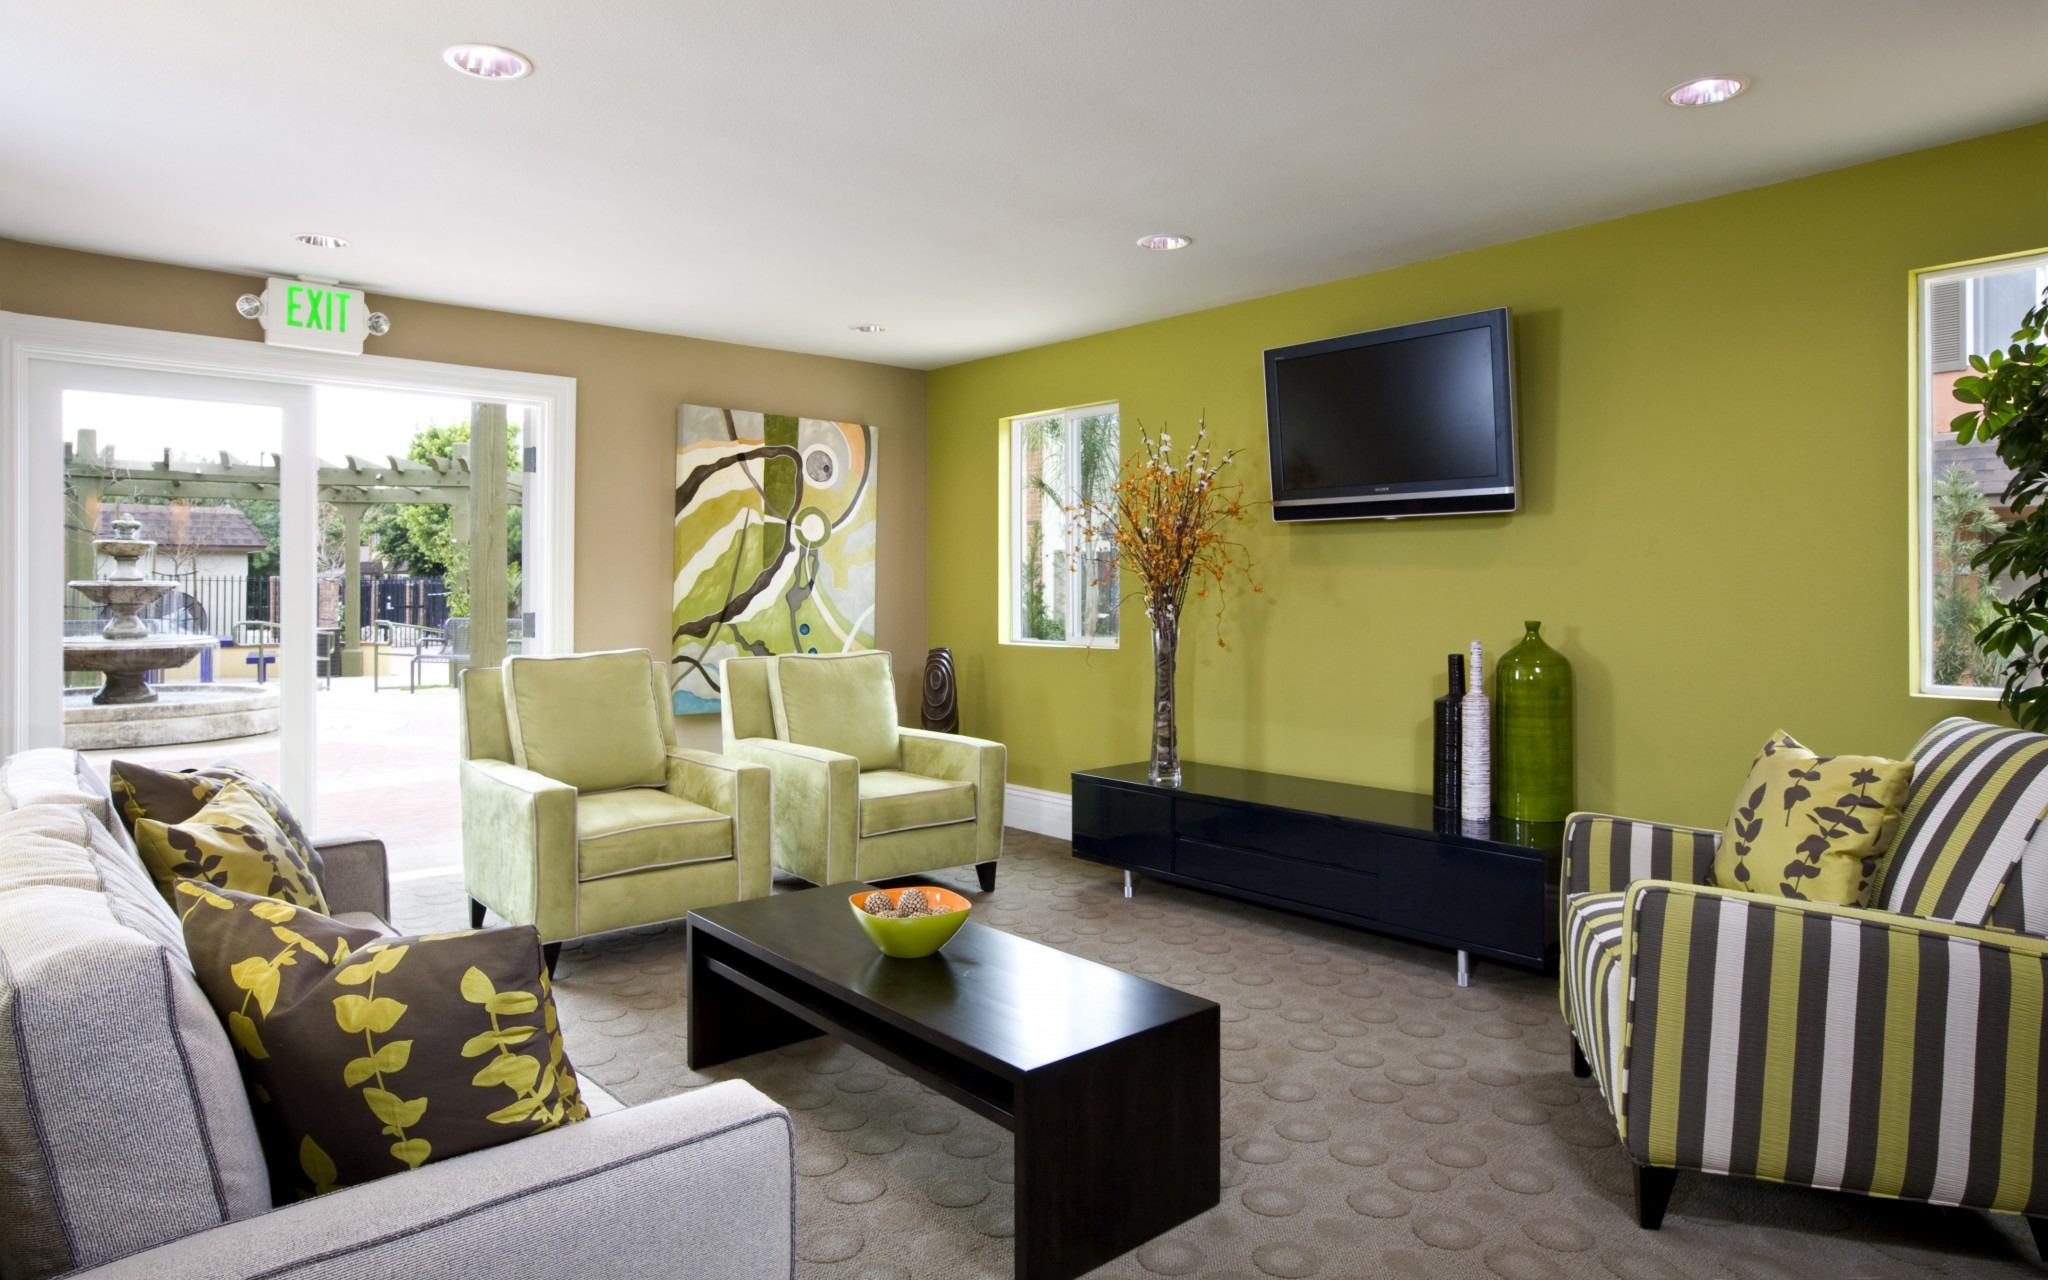 Interior of clubhouse with couch, chairs, coffee table, and TV.